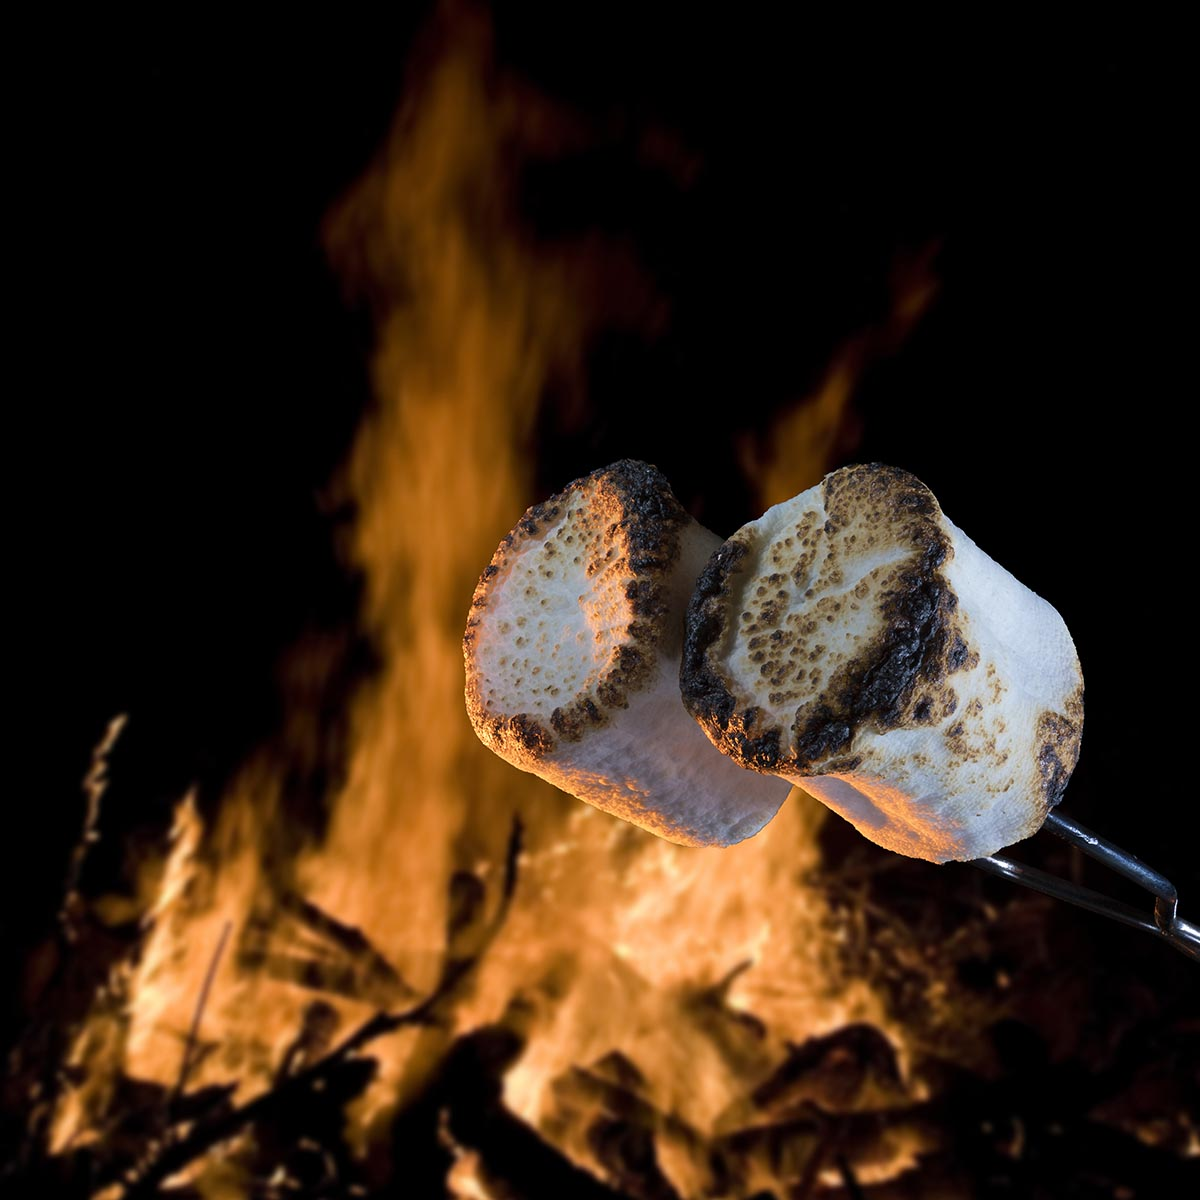 marshmallows roasting over a campfire, Guy Sagi, camping cooking, The Year Santa Came Back, time to reserve your campsite